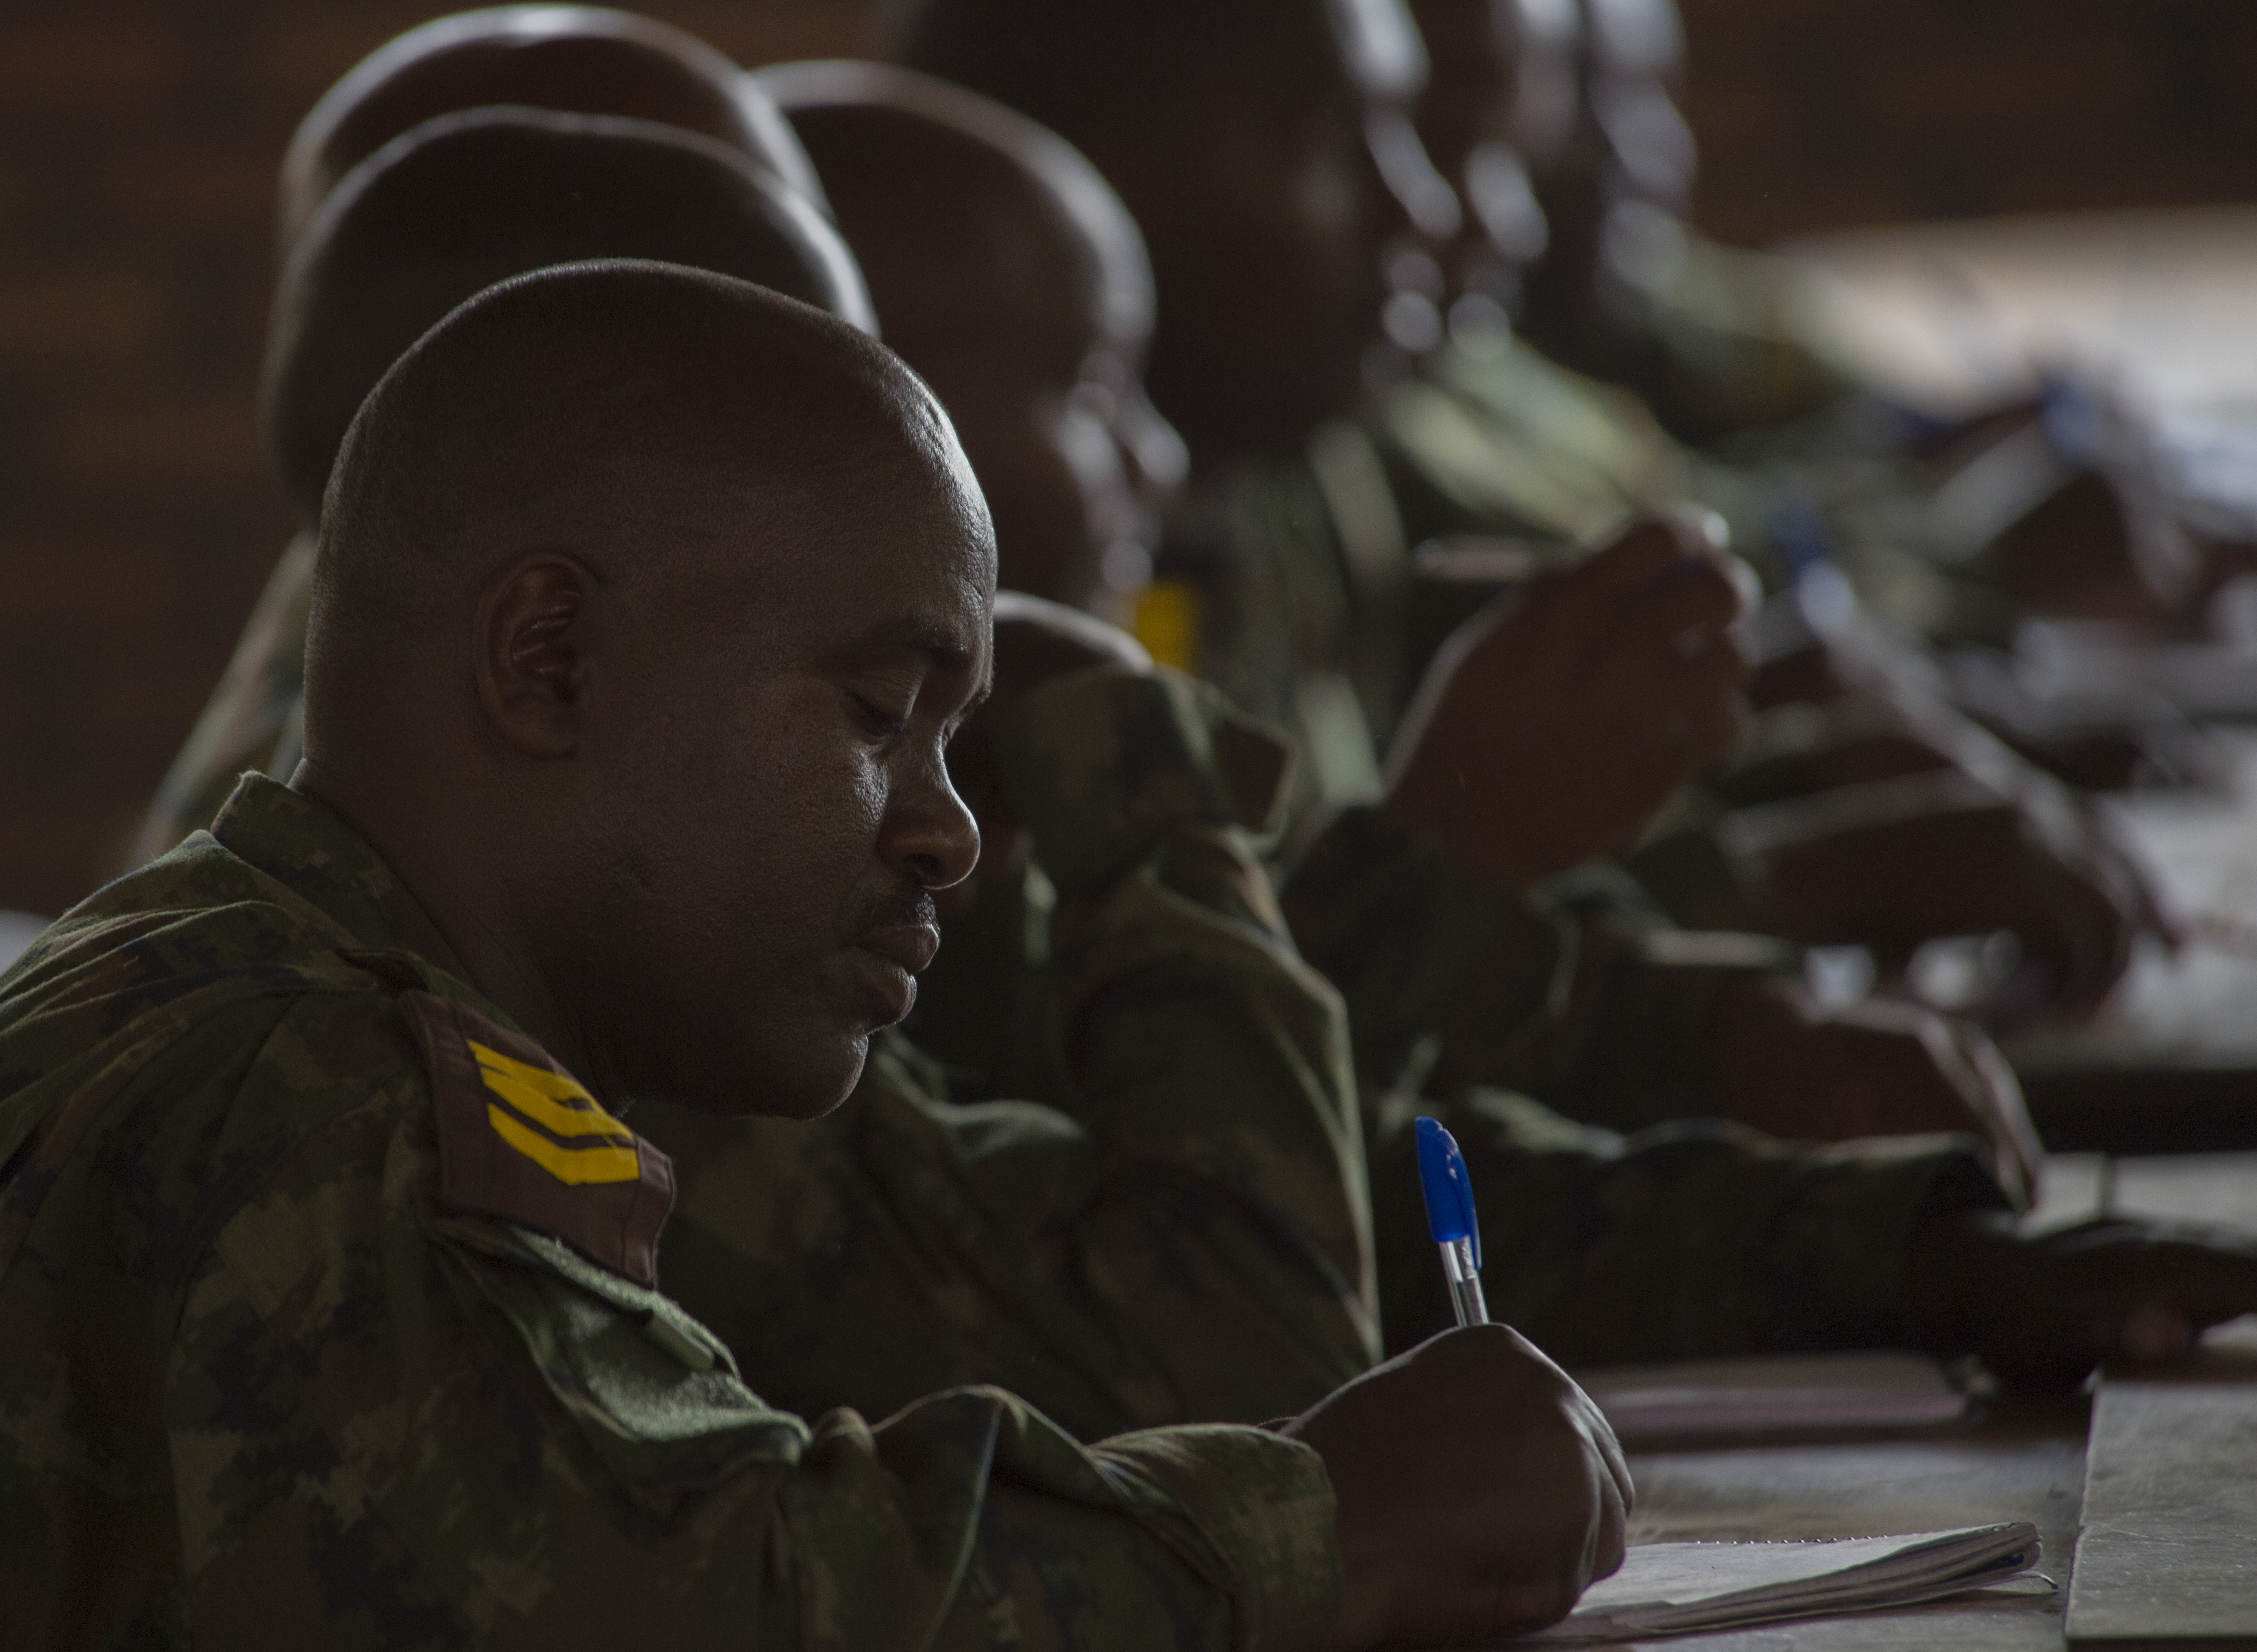 A Rwanda Defense Force noncommissioned officer takes notes during the patrolling portion of a NCO leadership course Sept. 9, 2016, at the Rwanda Military Academy, Rwanda. Members of 1st Battalion, 124th Infantry regiment, who are deployed from the Army National Guard to Combined Joint Task Force - Horn of Africa, observed the NCO course to provide advice and critiques to improve the class. (U.S. Air Force photo by Staff Sgt. Eric Summers Jr.)